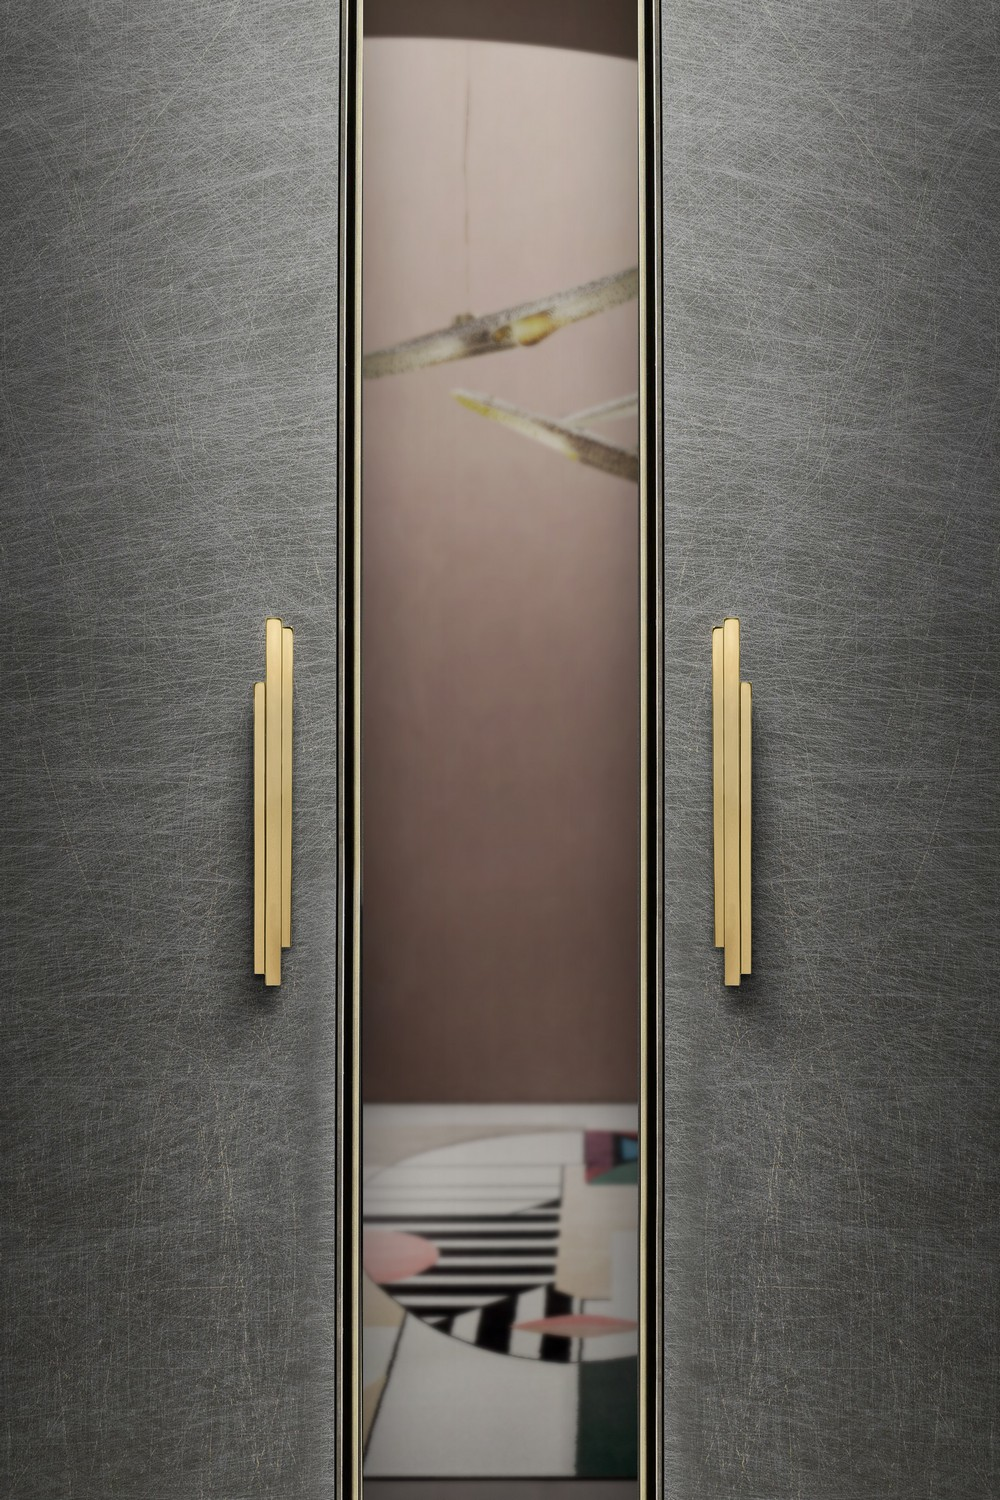 hospitality design Hospitality Design: The Best Door Pulls to Use in Fashionable Projects Hospitality Design The Best Door Pulls to Use in Fashionable Projects 7